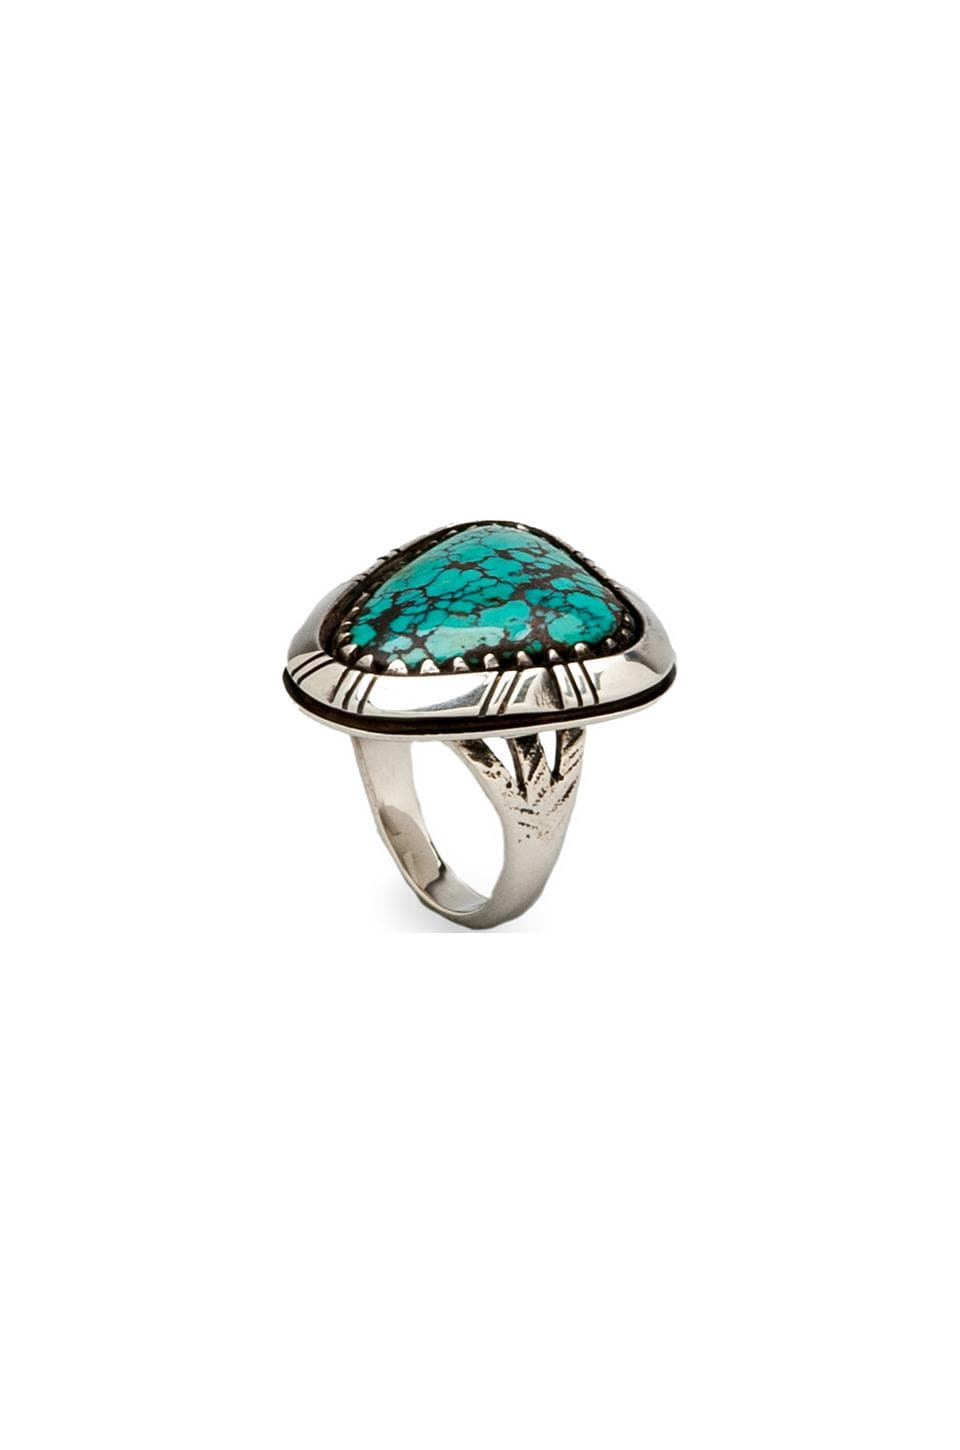 Spell & The Gypsy Collective Mountain Ring in Turquoise